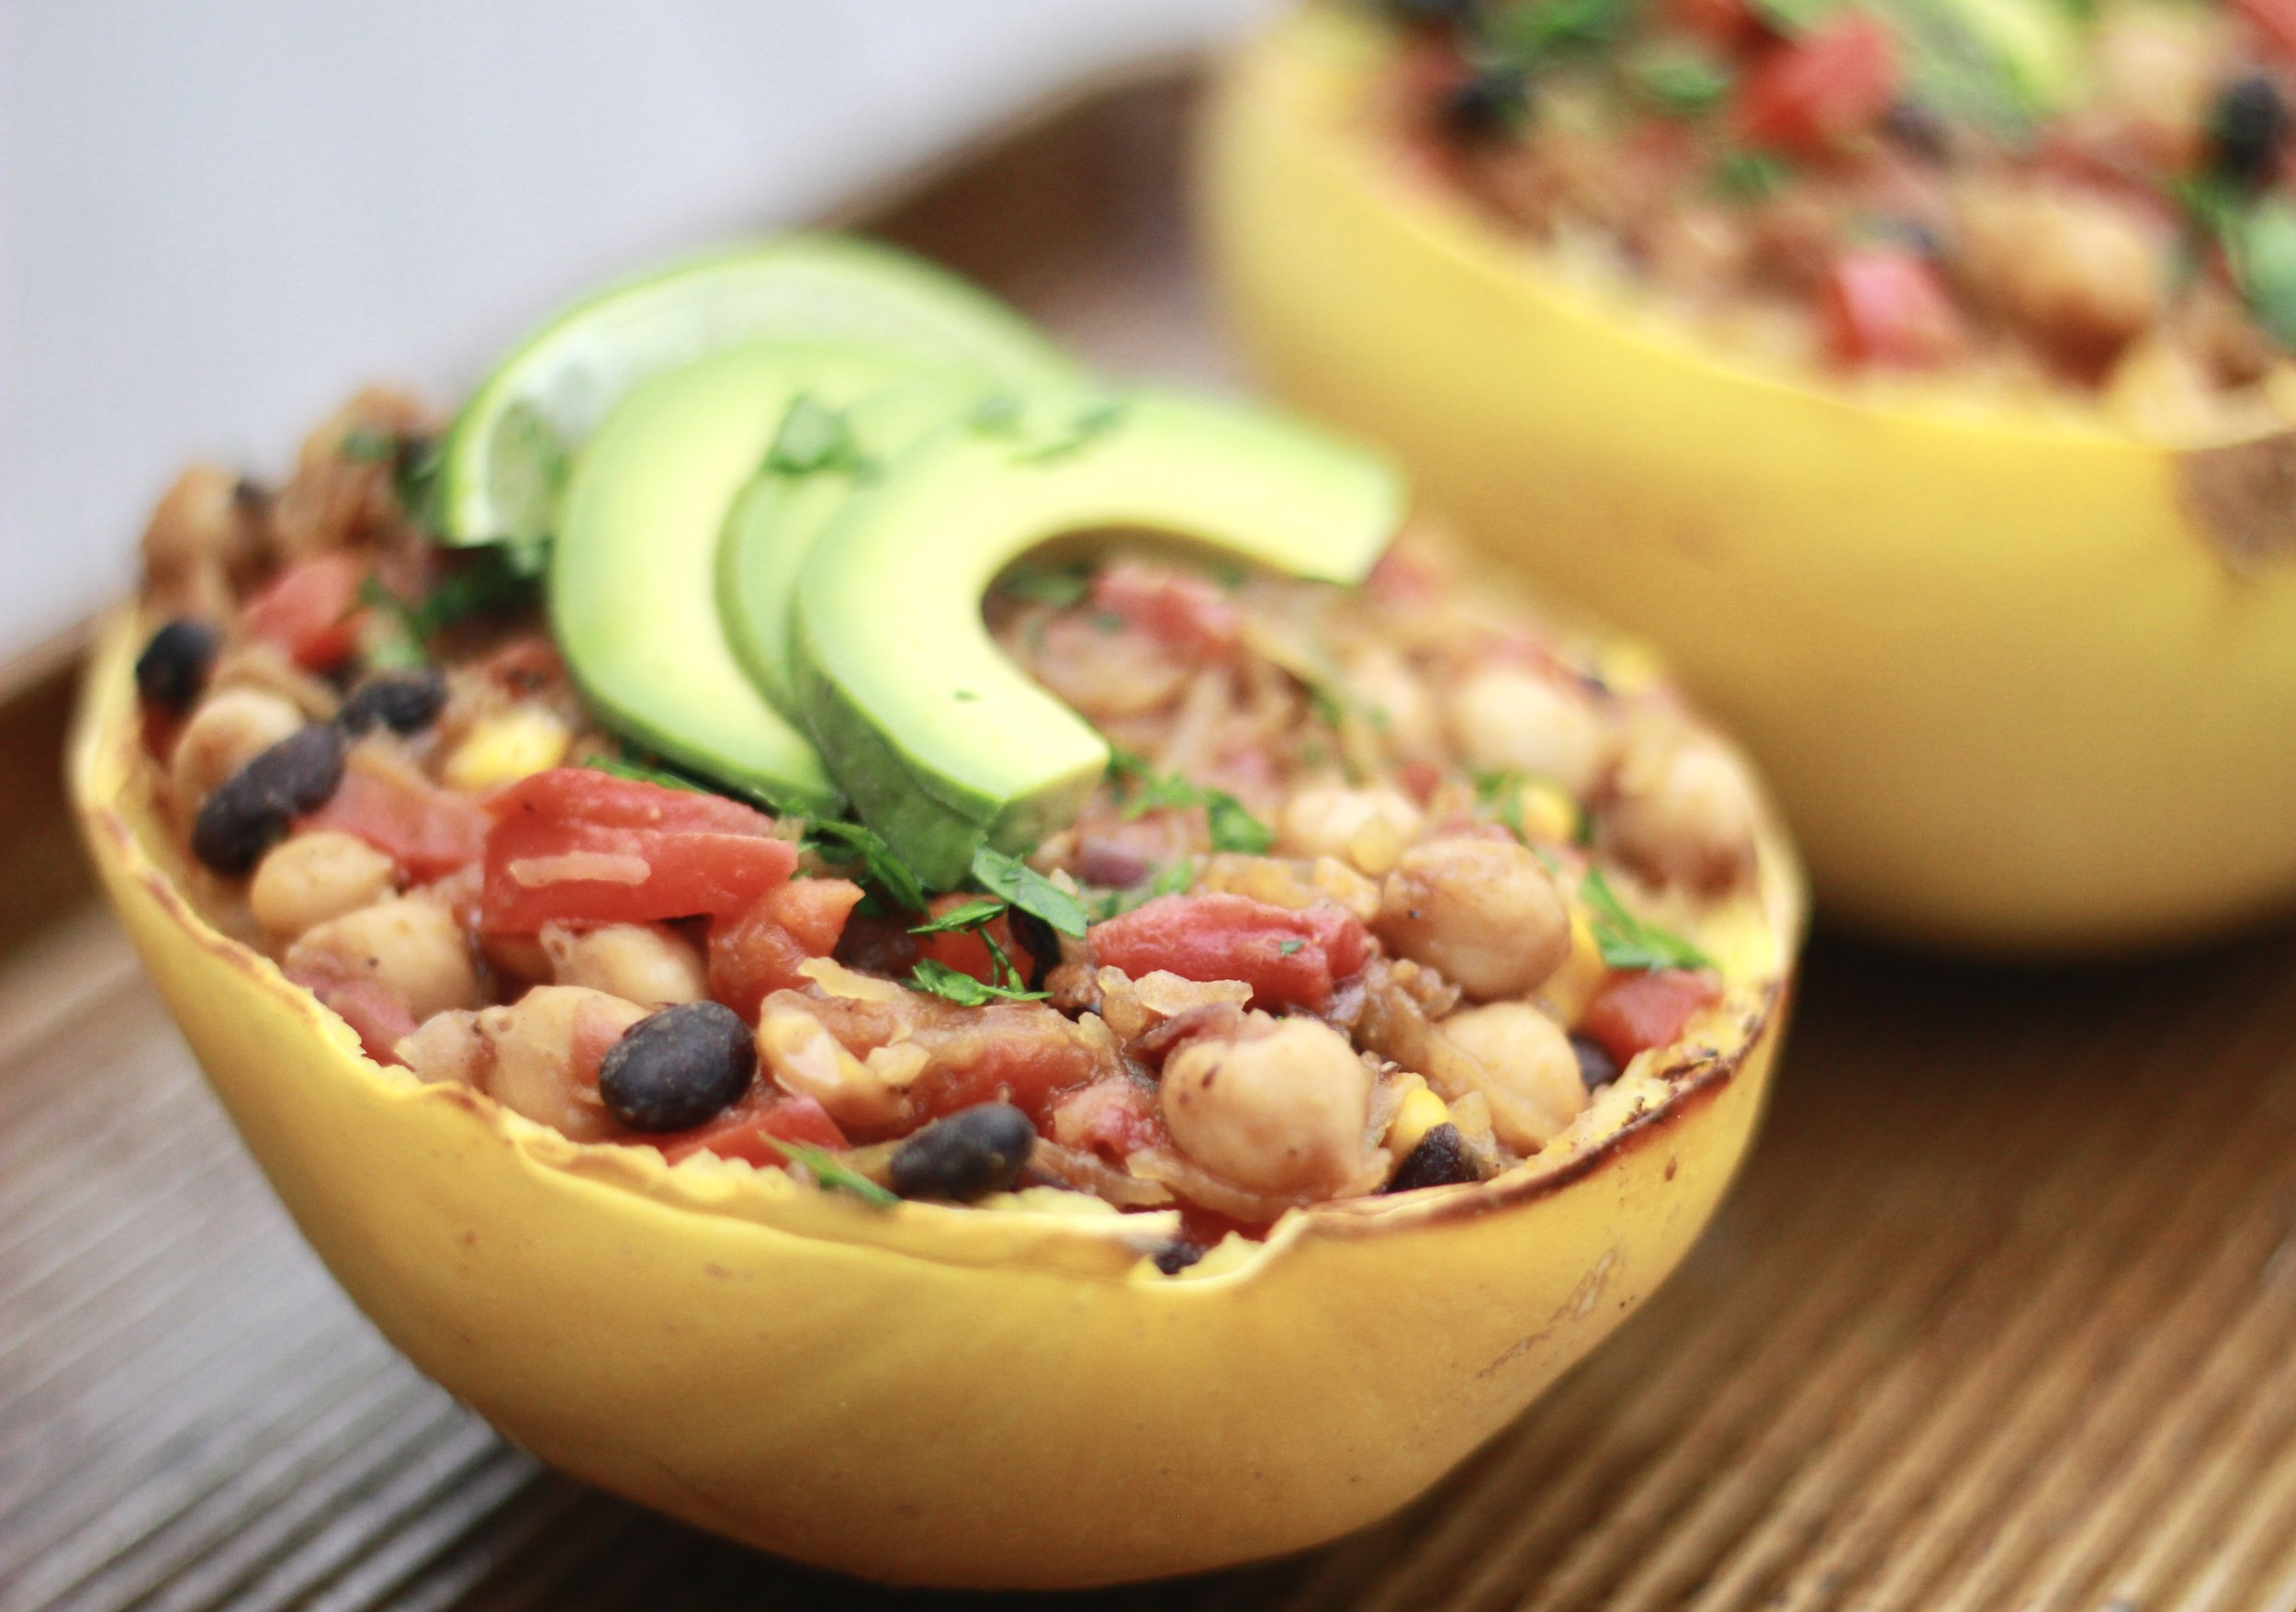 Easy Mexican Spaghetti Squash Boats - These boats are a delicious way to incorporate cancer-fighting winter squash!